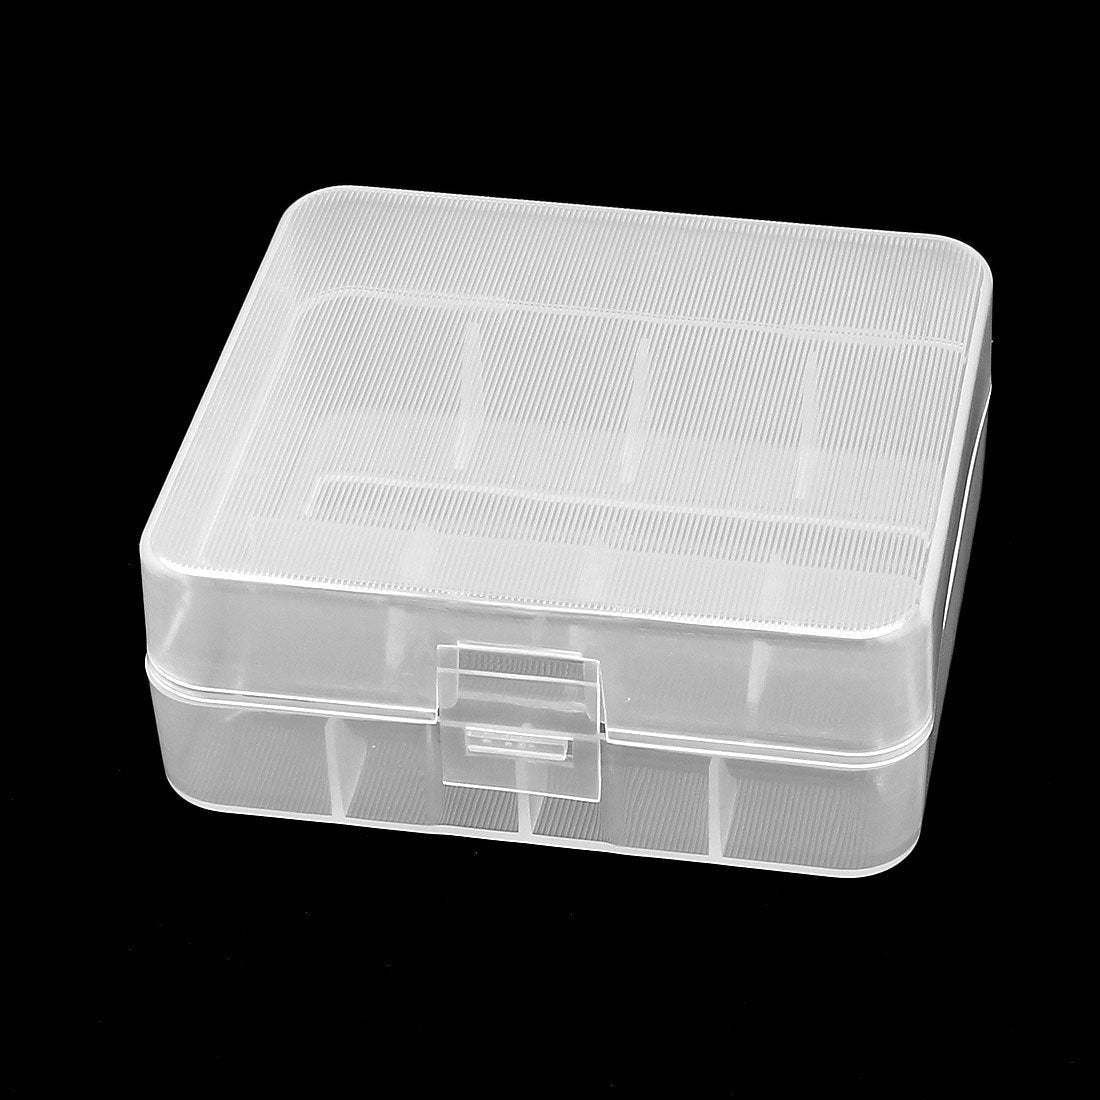 Voodoo Vape ACCESSORIES Battery Case for 18650 /  26650 Batteries - Protective Travel Box